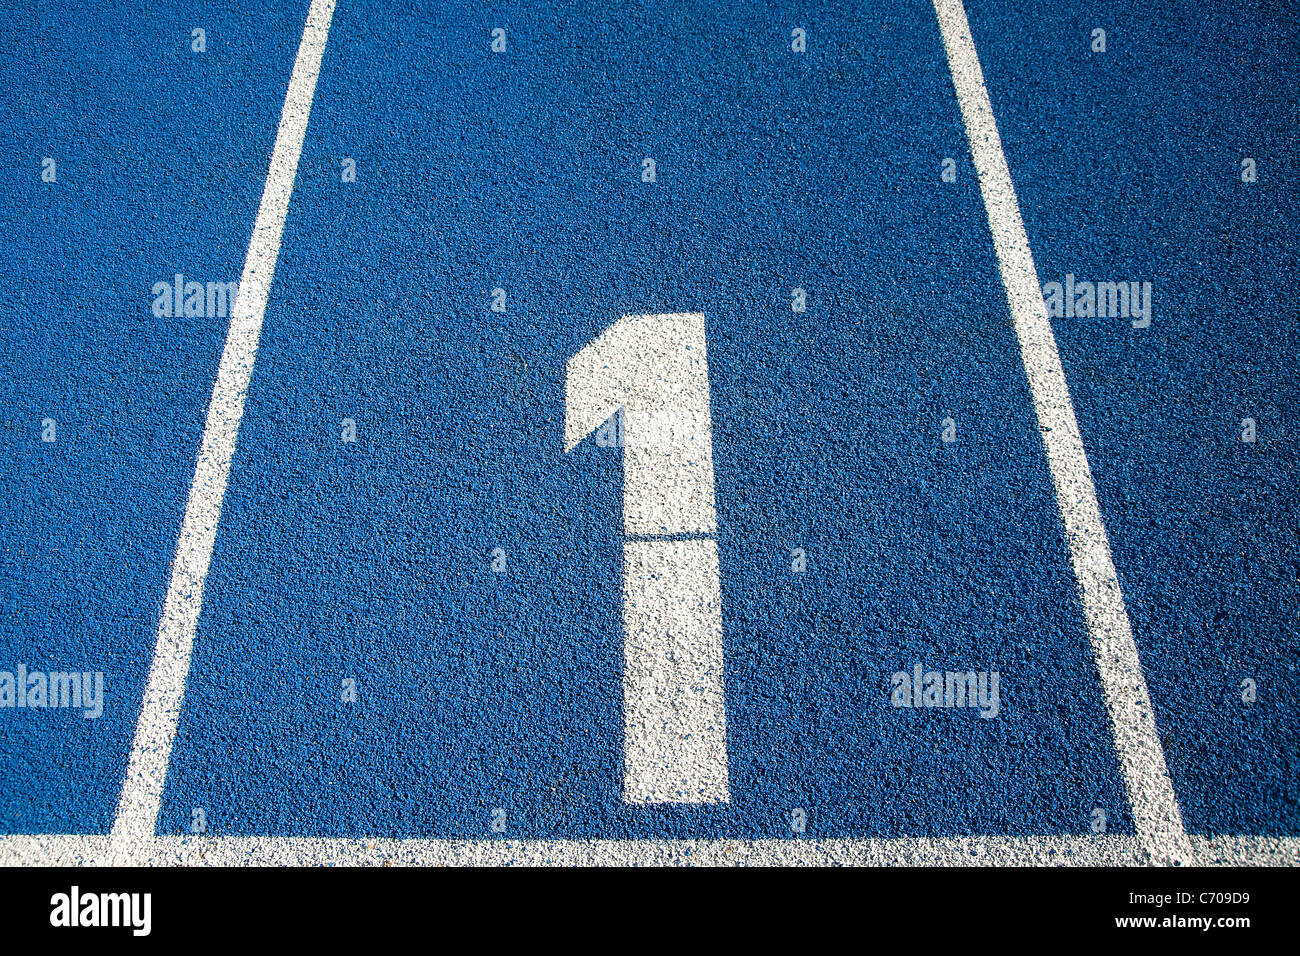 Number 1 on a blue running track - Stock Image